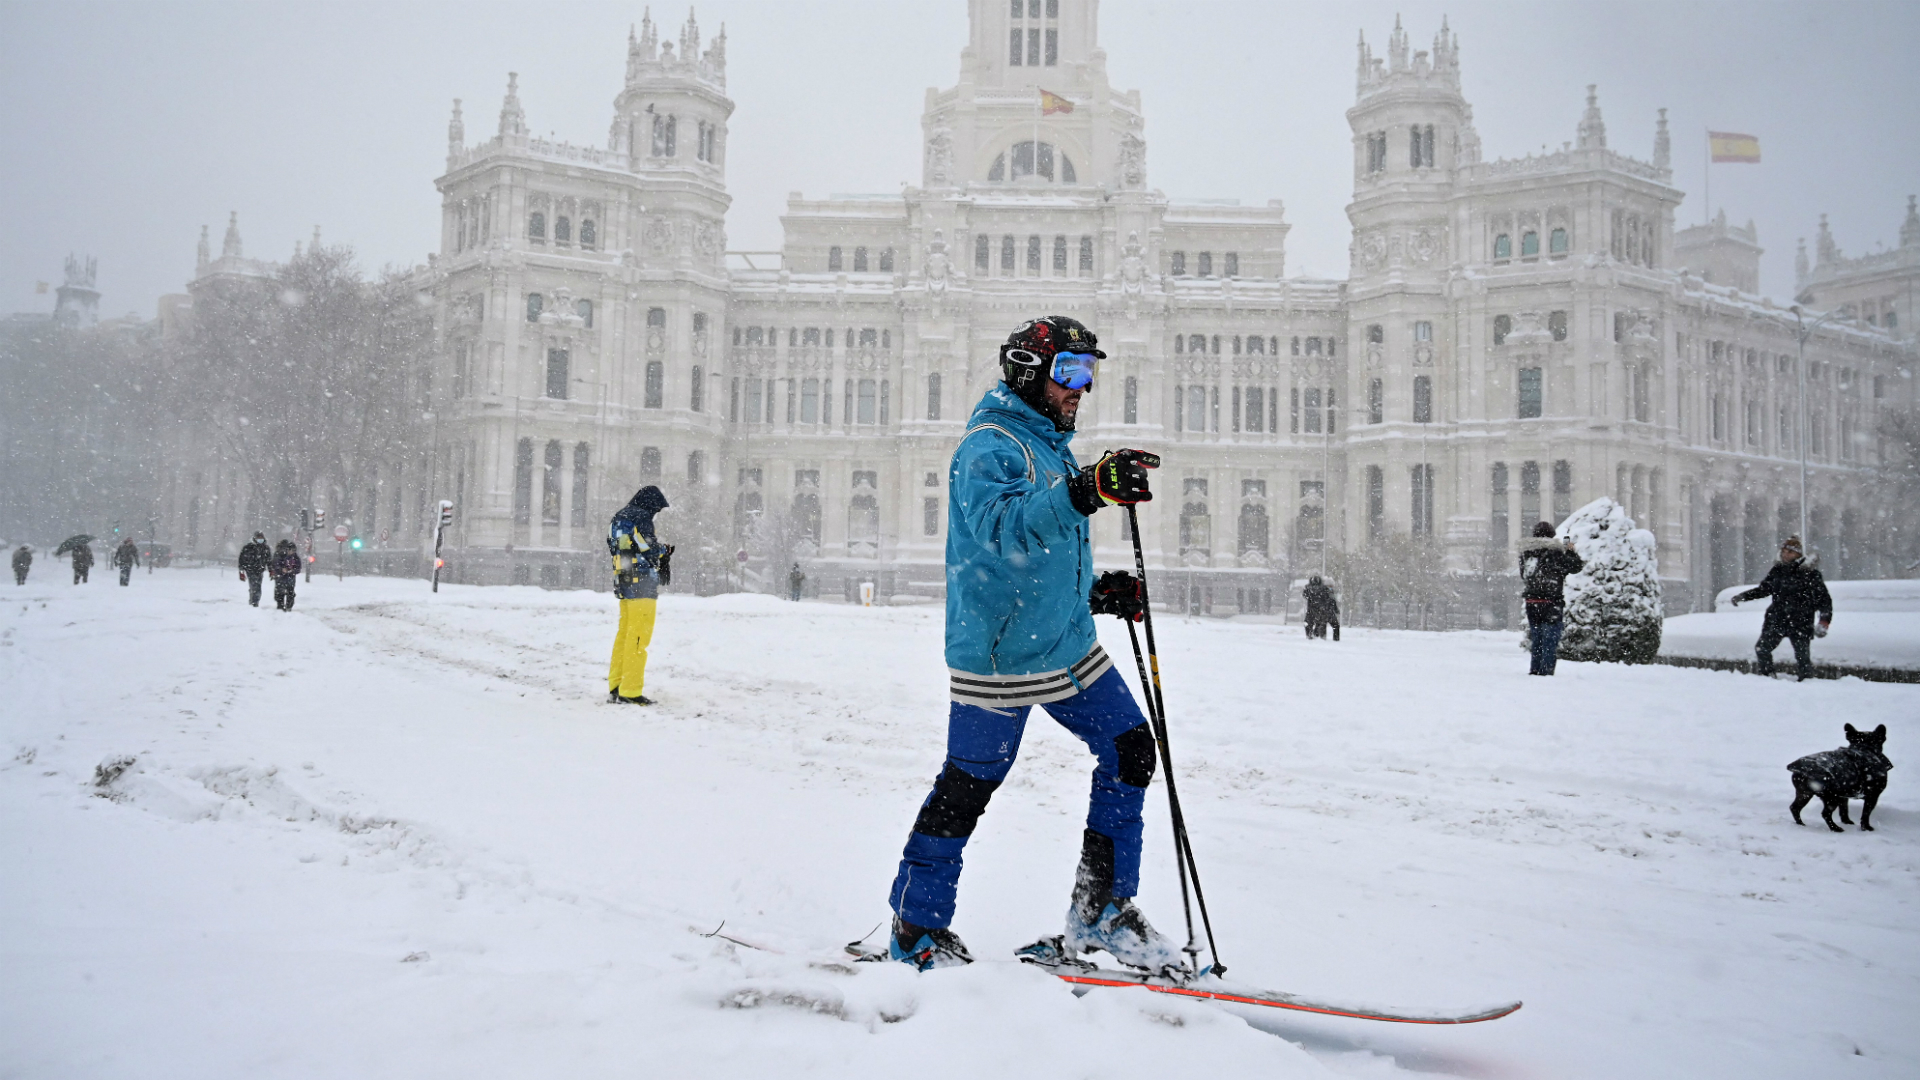 Atletico v Athletic called off as Madrid snowstorm closes airport, leaves roads treacherous